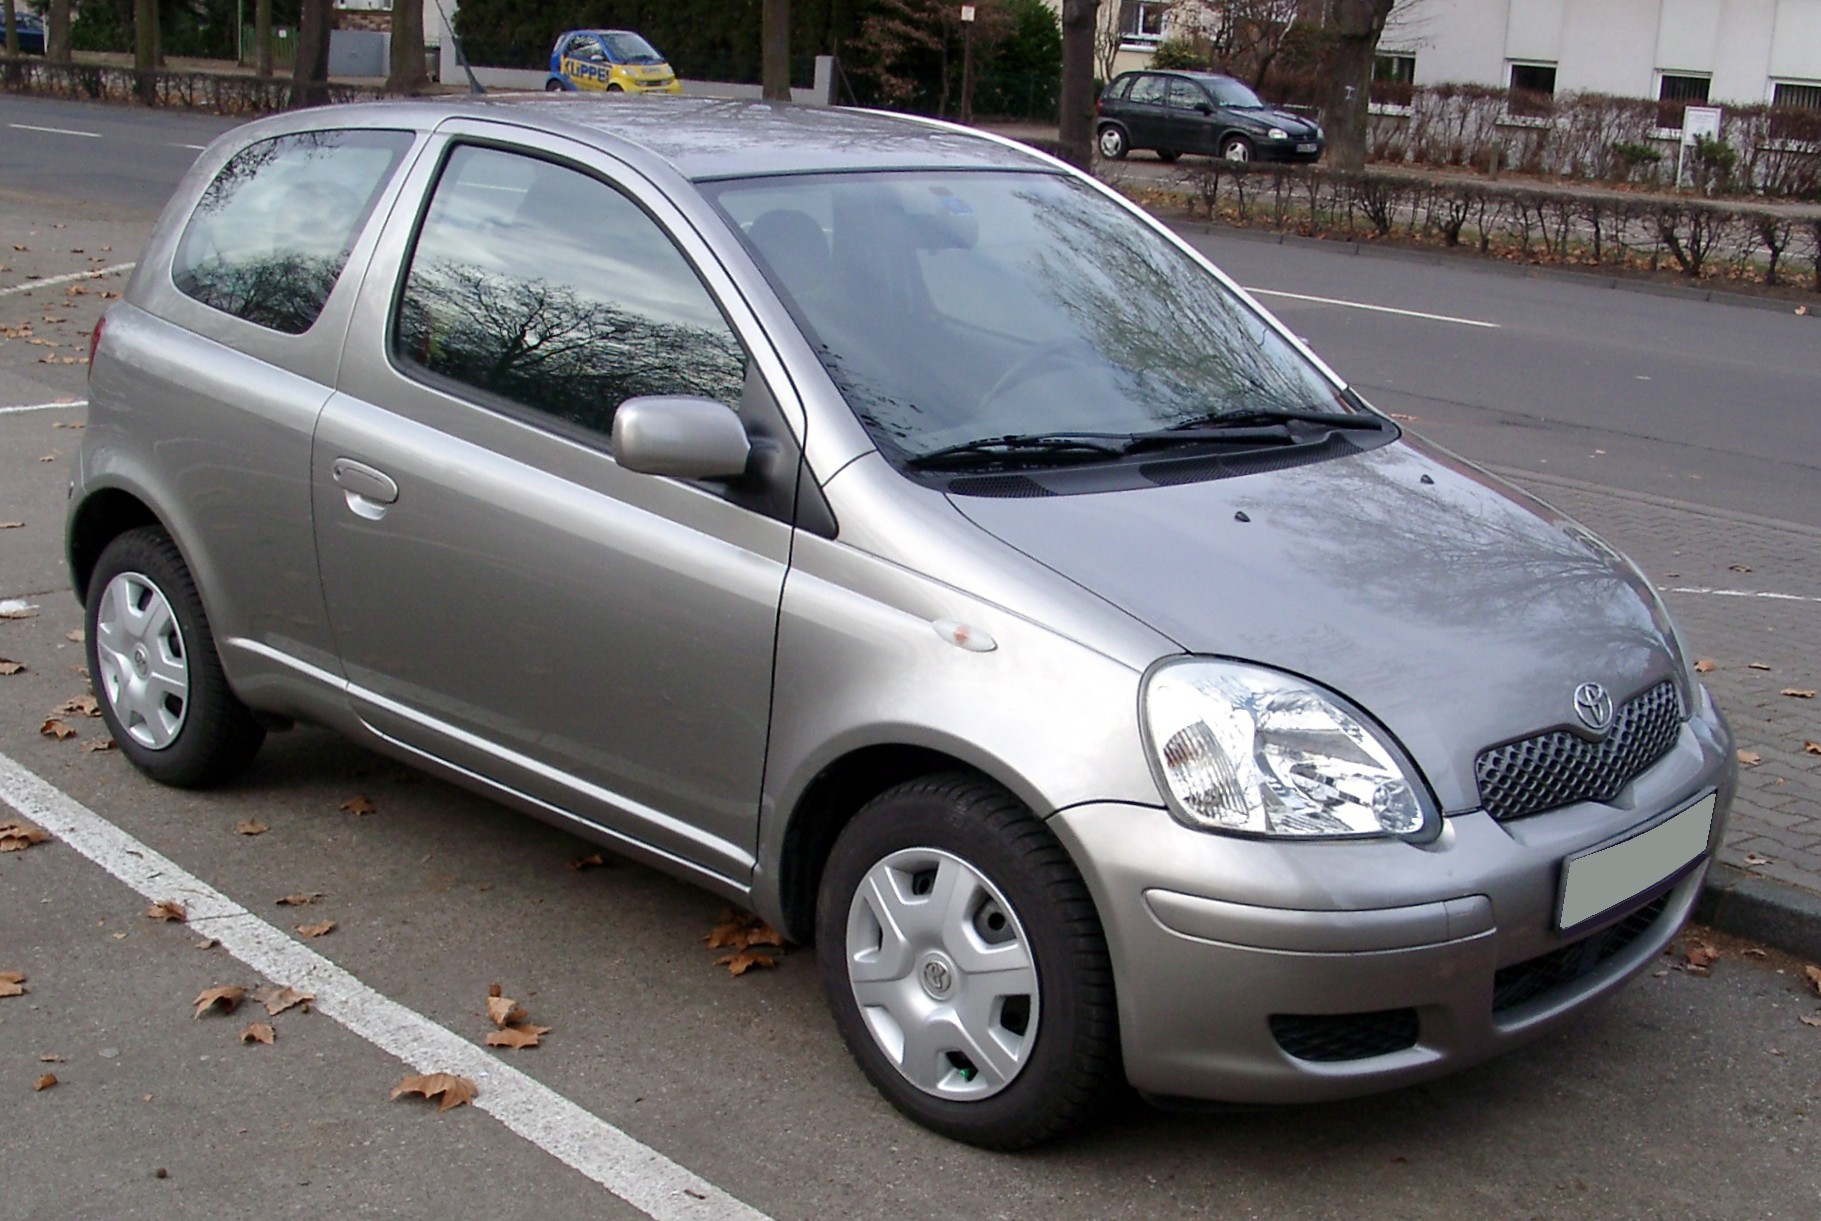 Toyota Yaris 1999 photo - 1